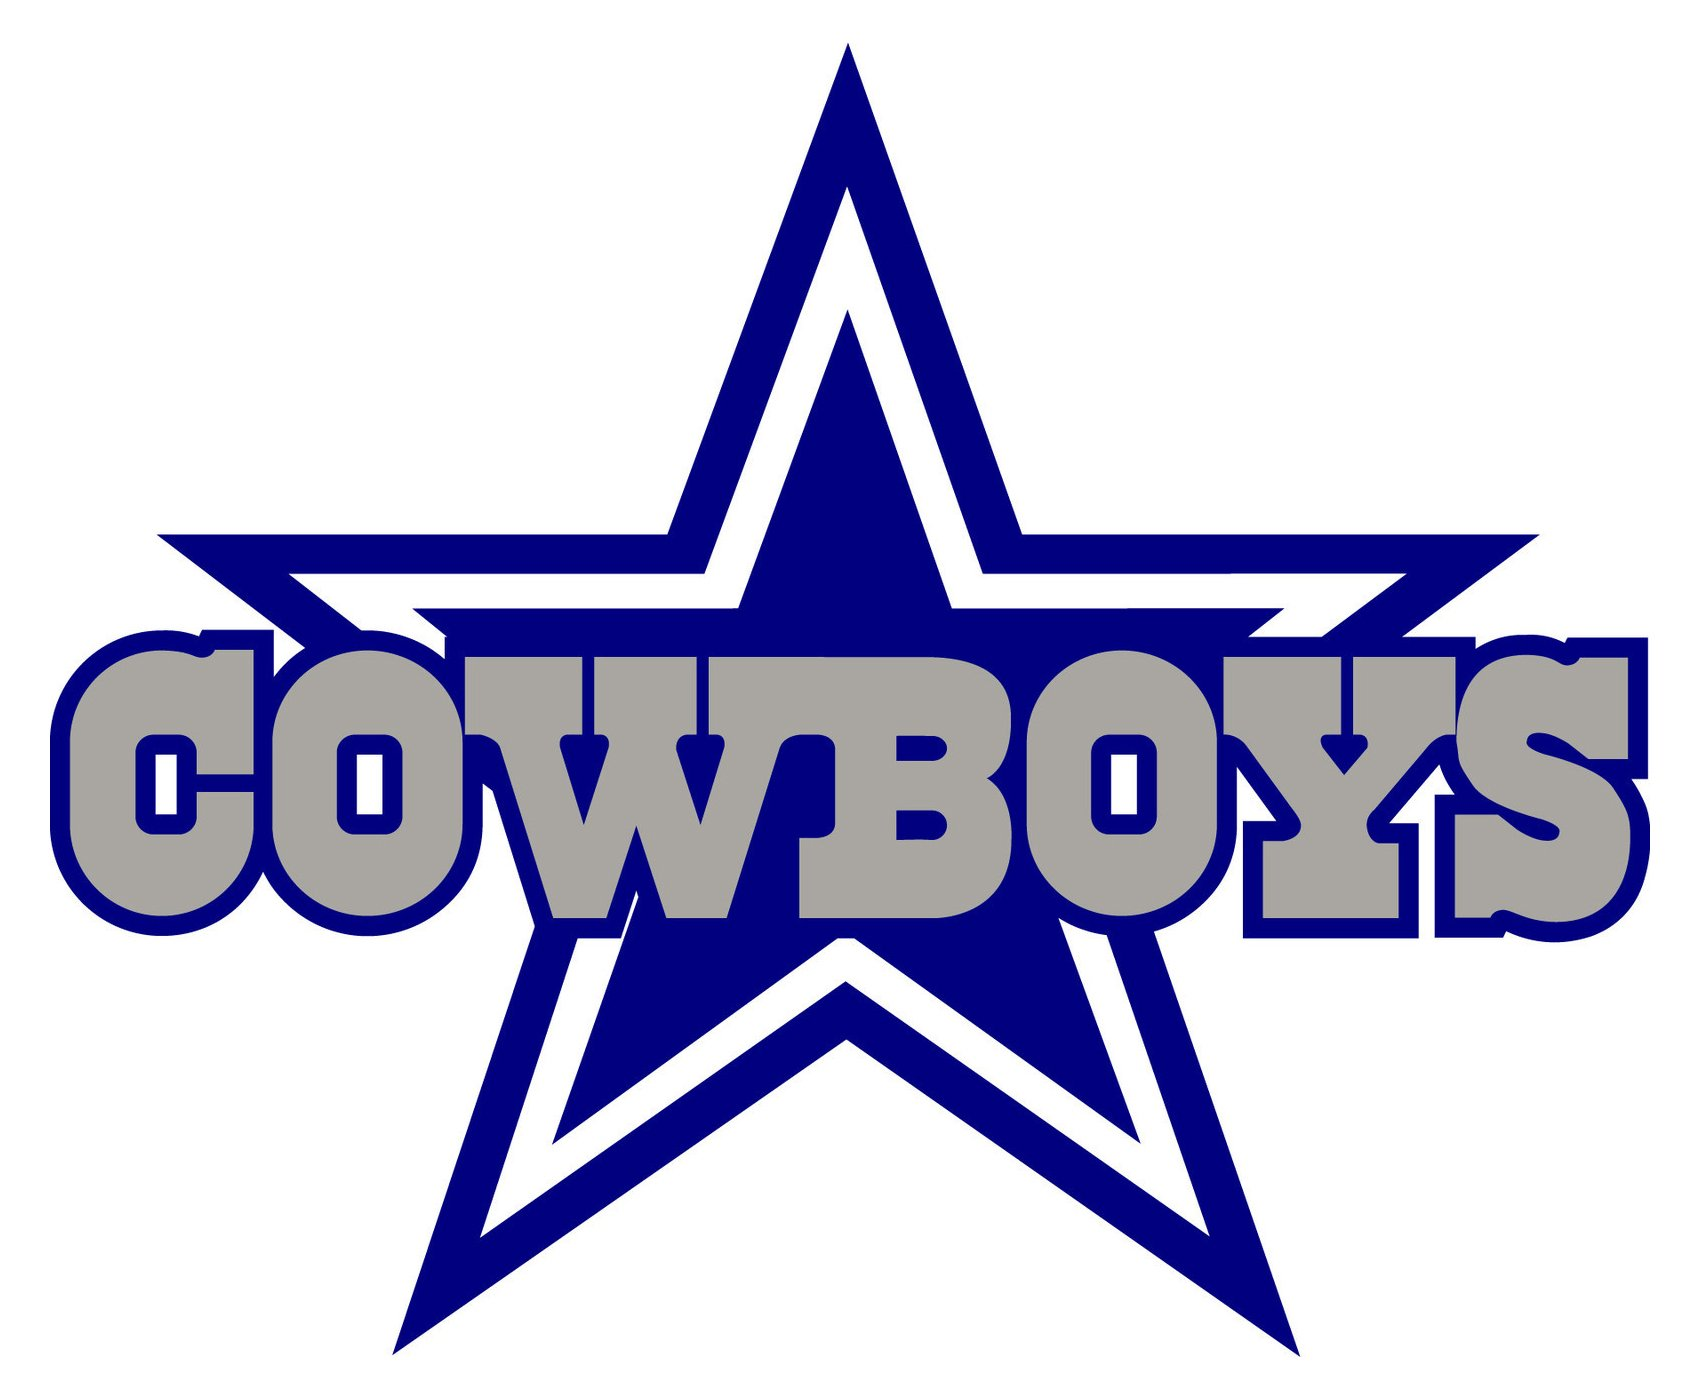 dallas cowboys logo  dallas cowboys symbol meaning show me pictures of dallas cowboys logo photos of dallas cowboys logo